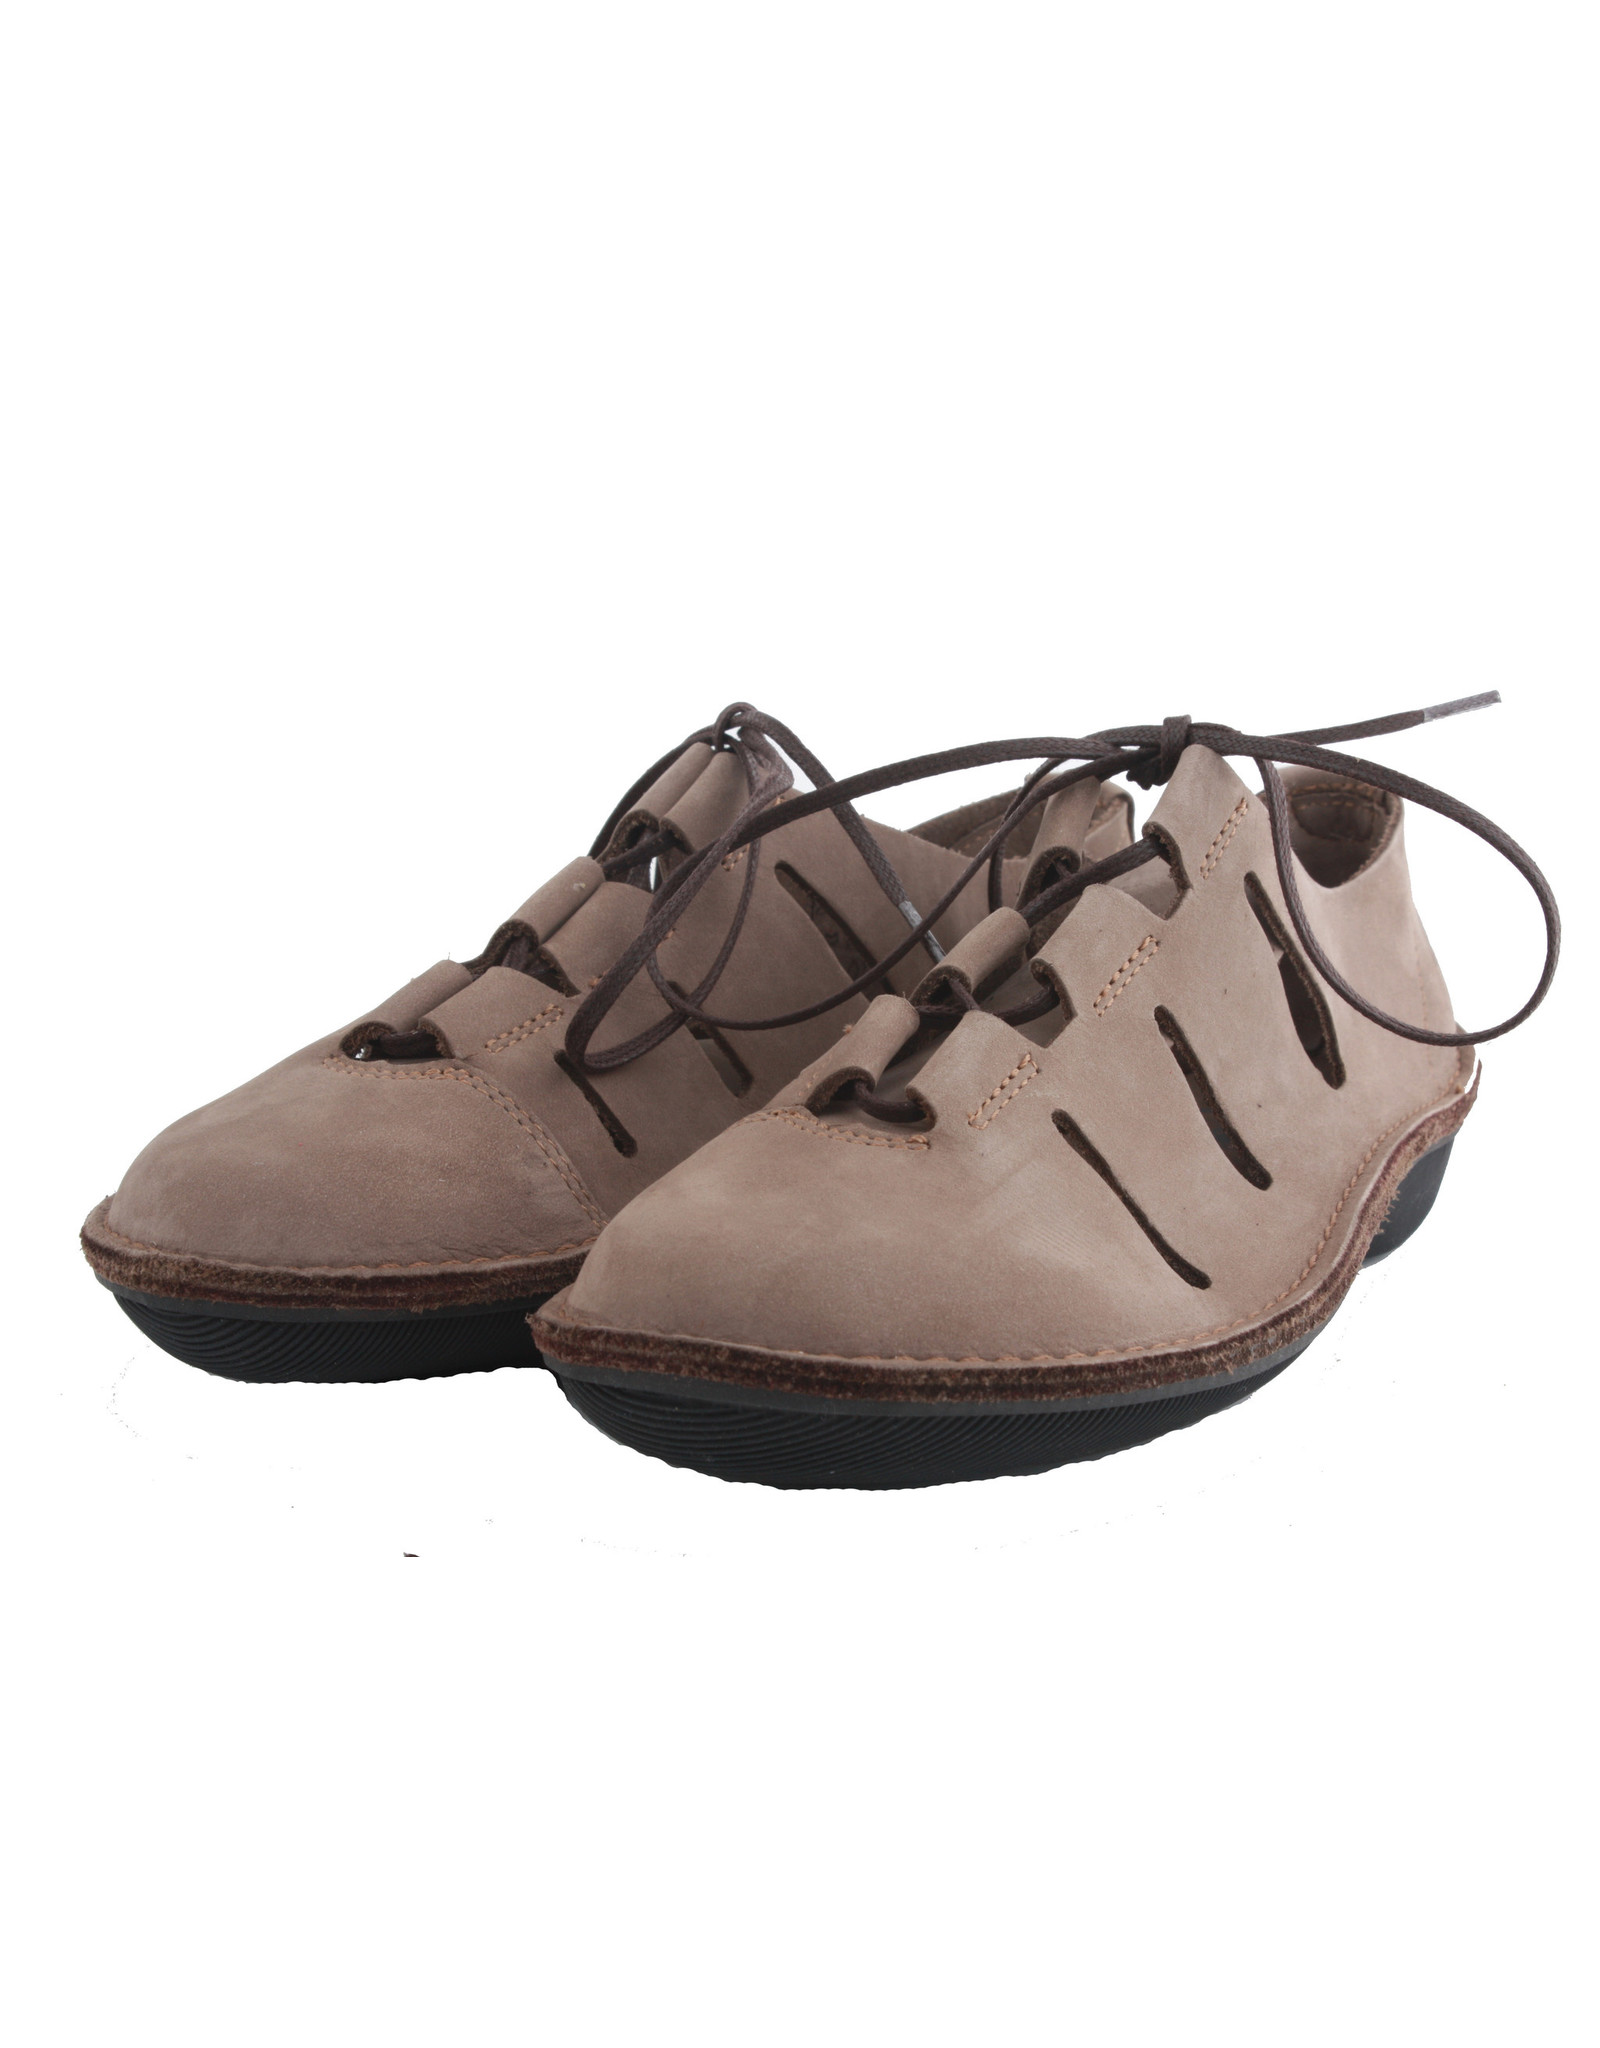 Loints Turbo 39036 302 taupe